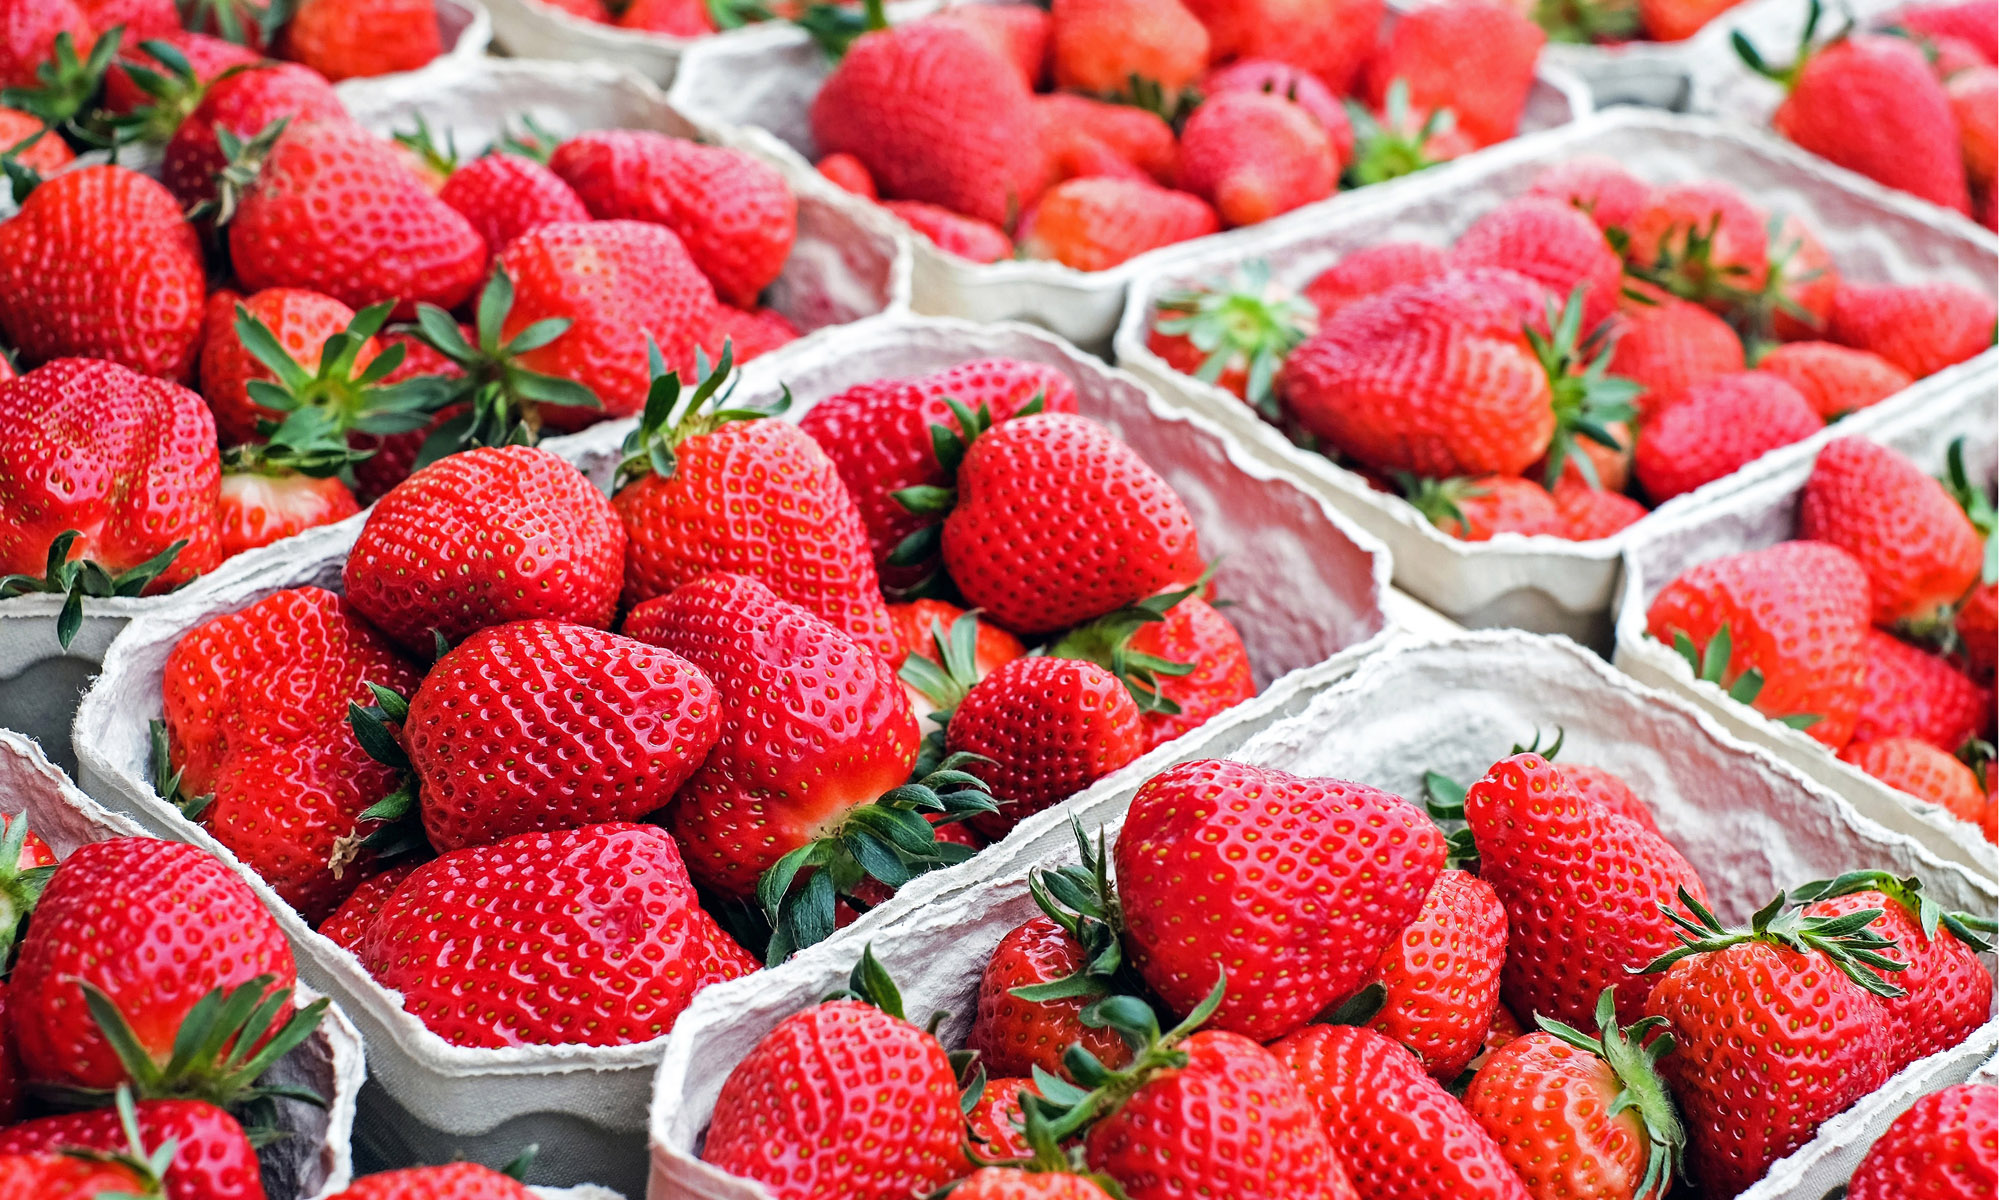 new-york-state-berry-growers-why-dirty-dozen-list-is-misleading-strawberries